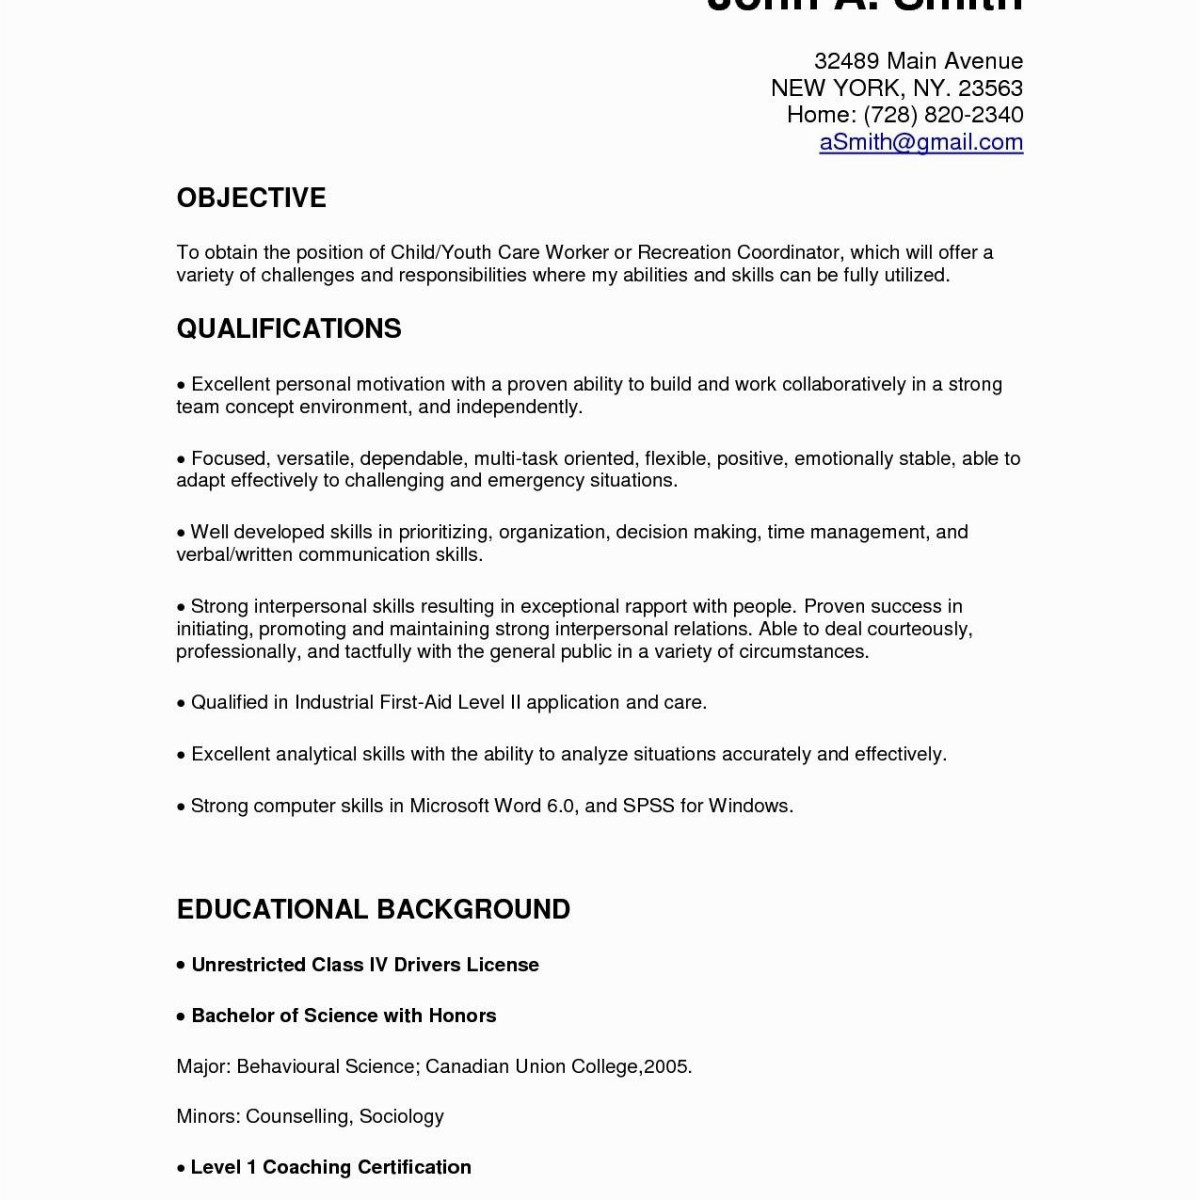 Writing Skills On Resume - How to Write the Best Resume Pretty Samples Resumes New Best Resume